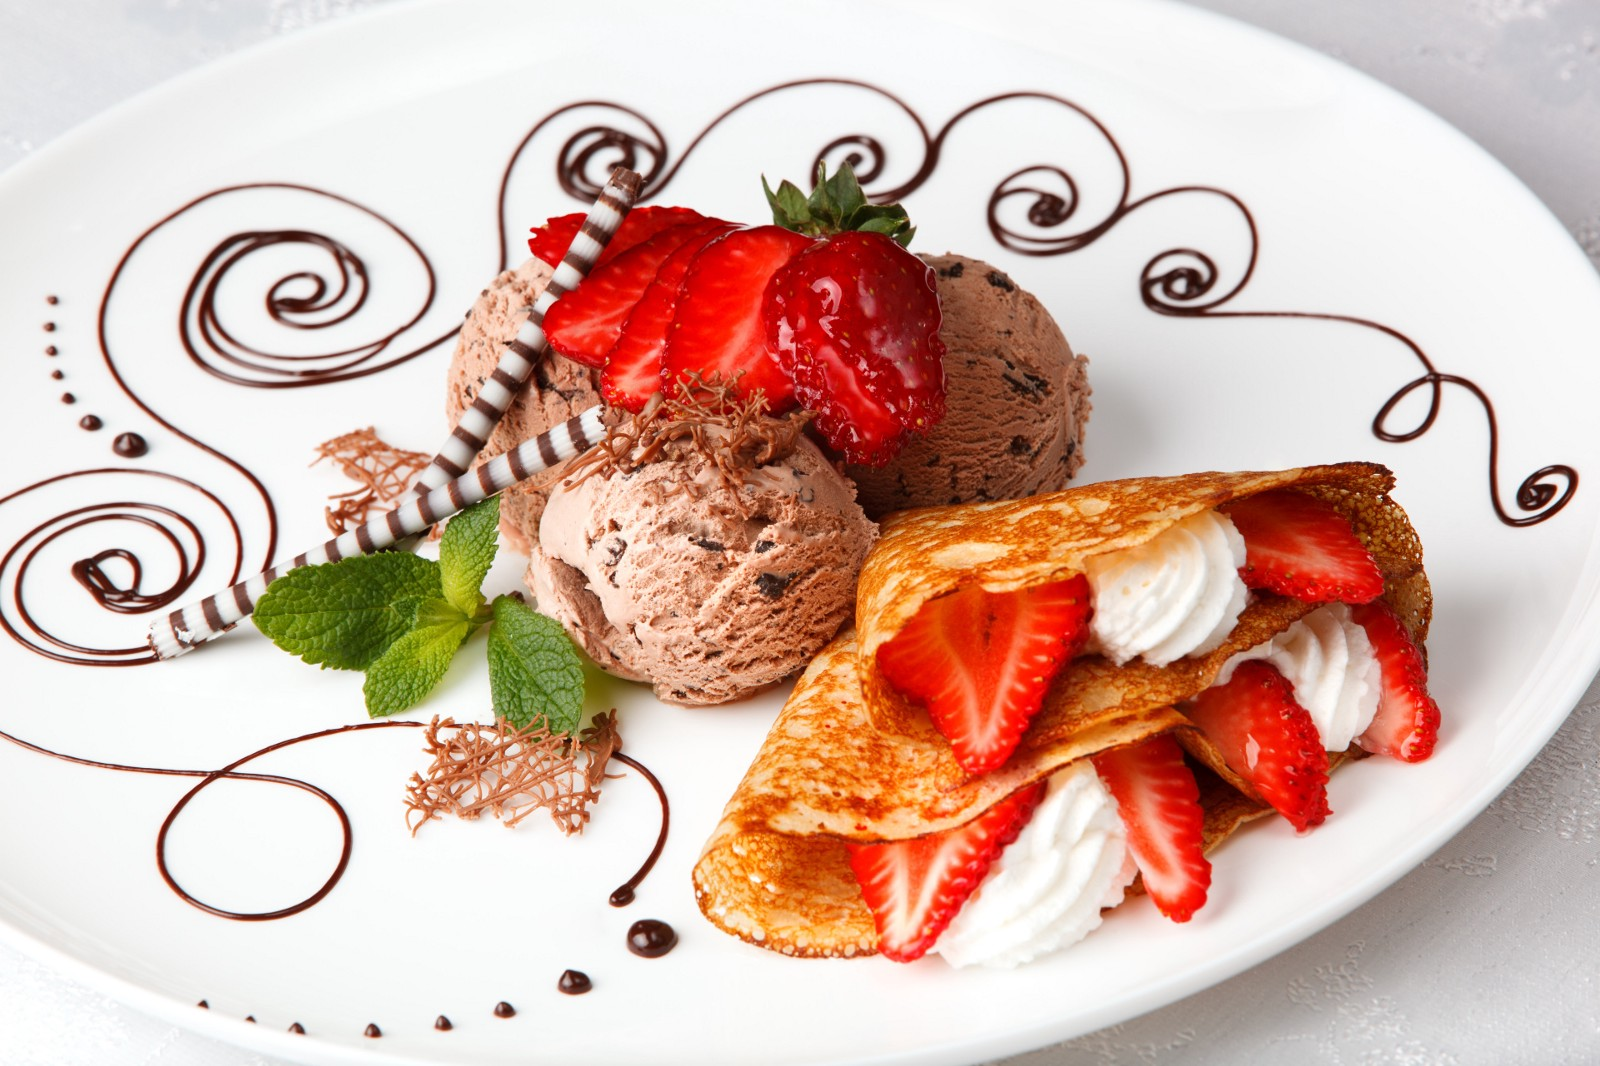 Filipino recipes binagol dessert recipe pinoy food binagol also called binangol is a sweet delicacy originating from leyte an island in the visayas there are several versions of this recipe some uses forumfinder Gallery